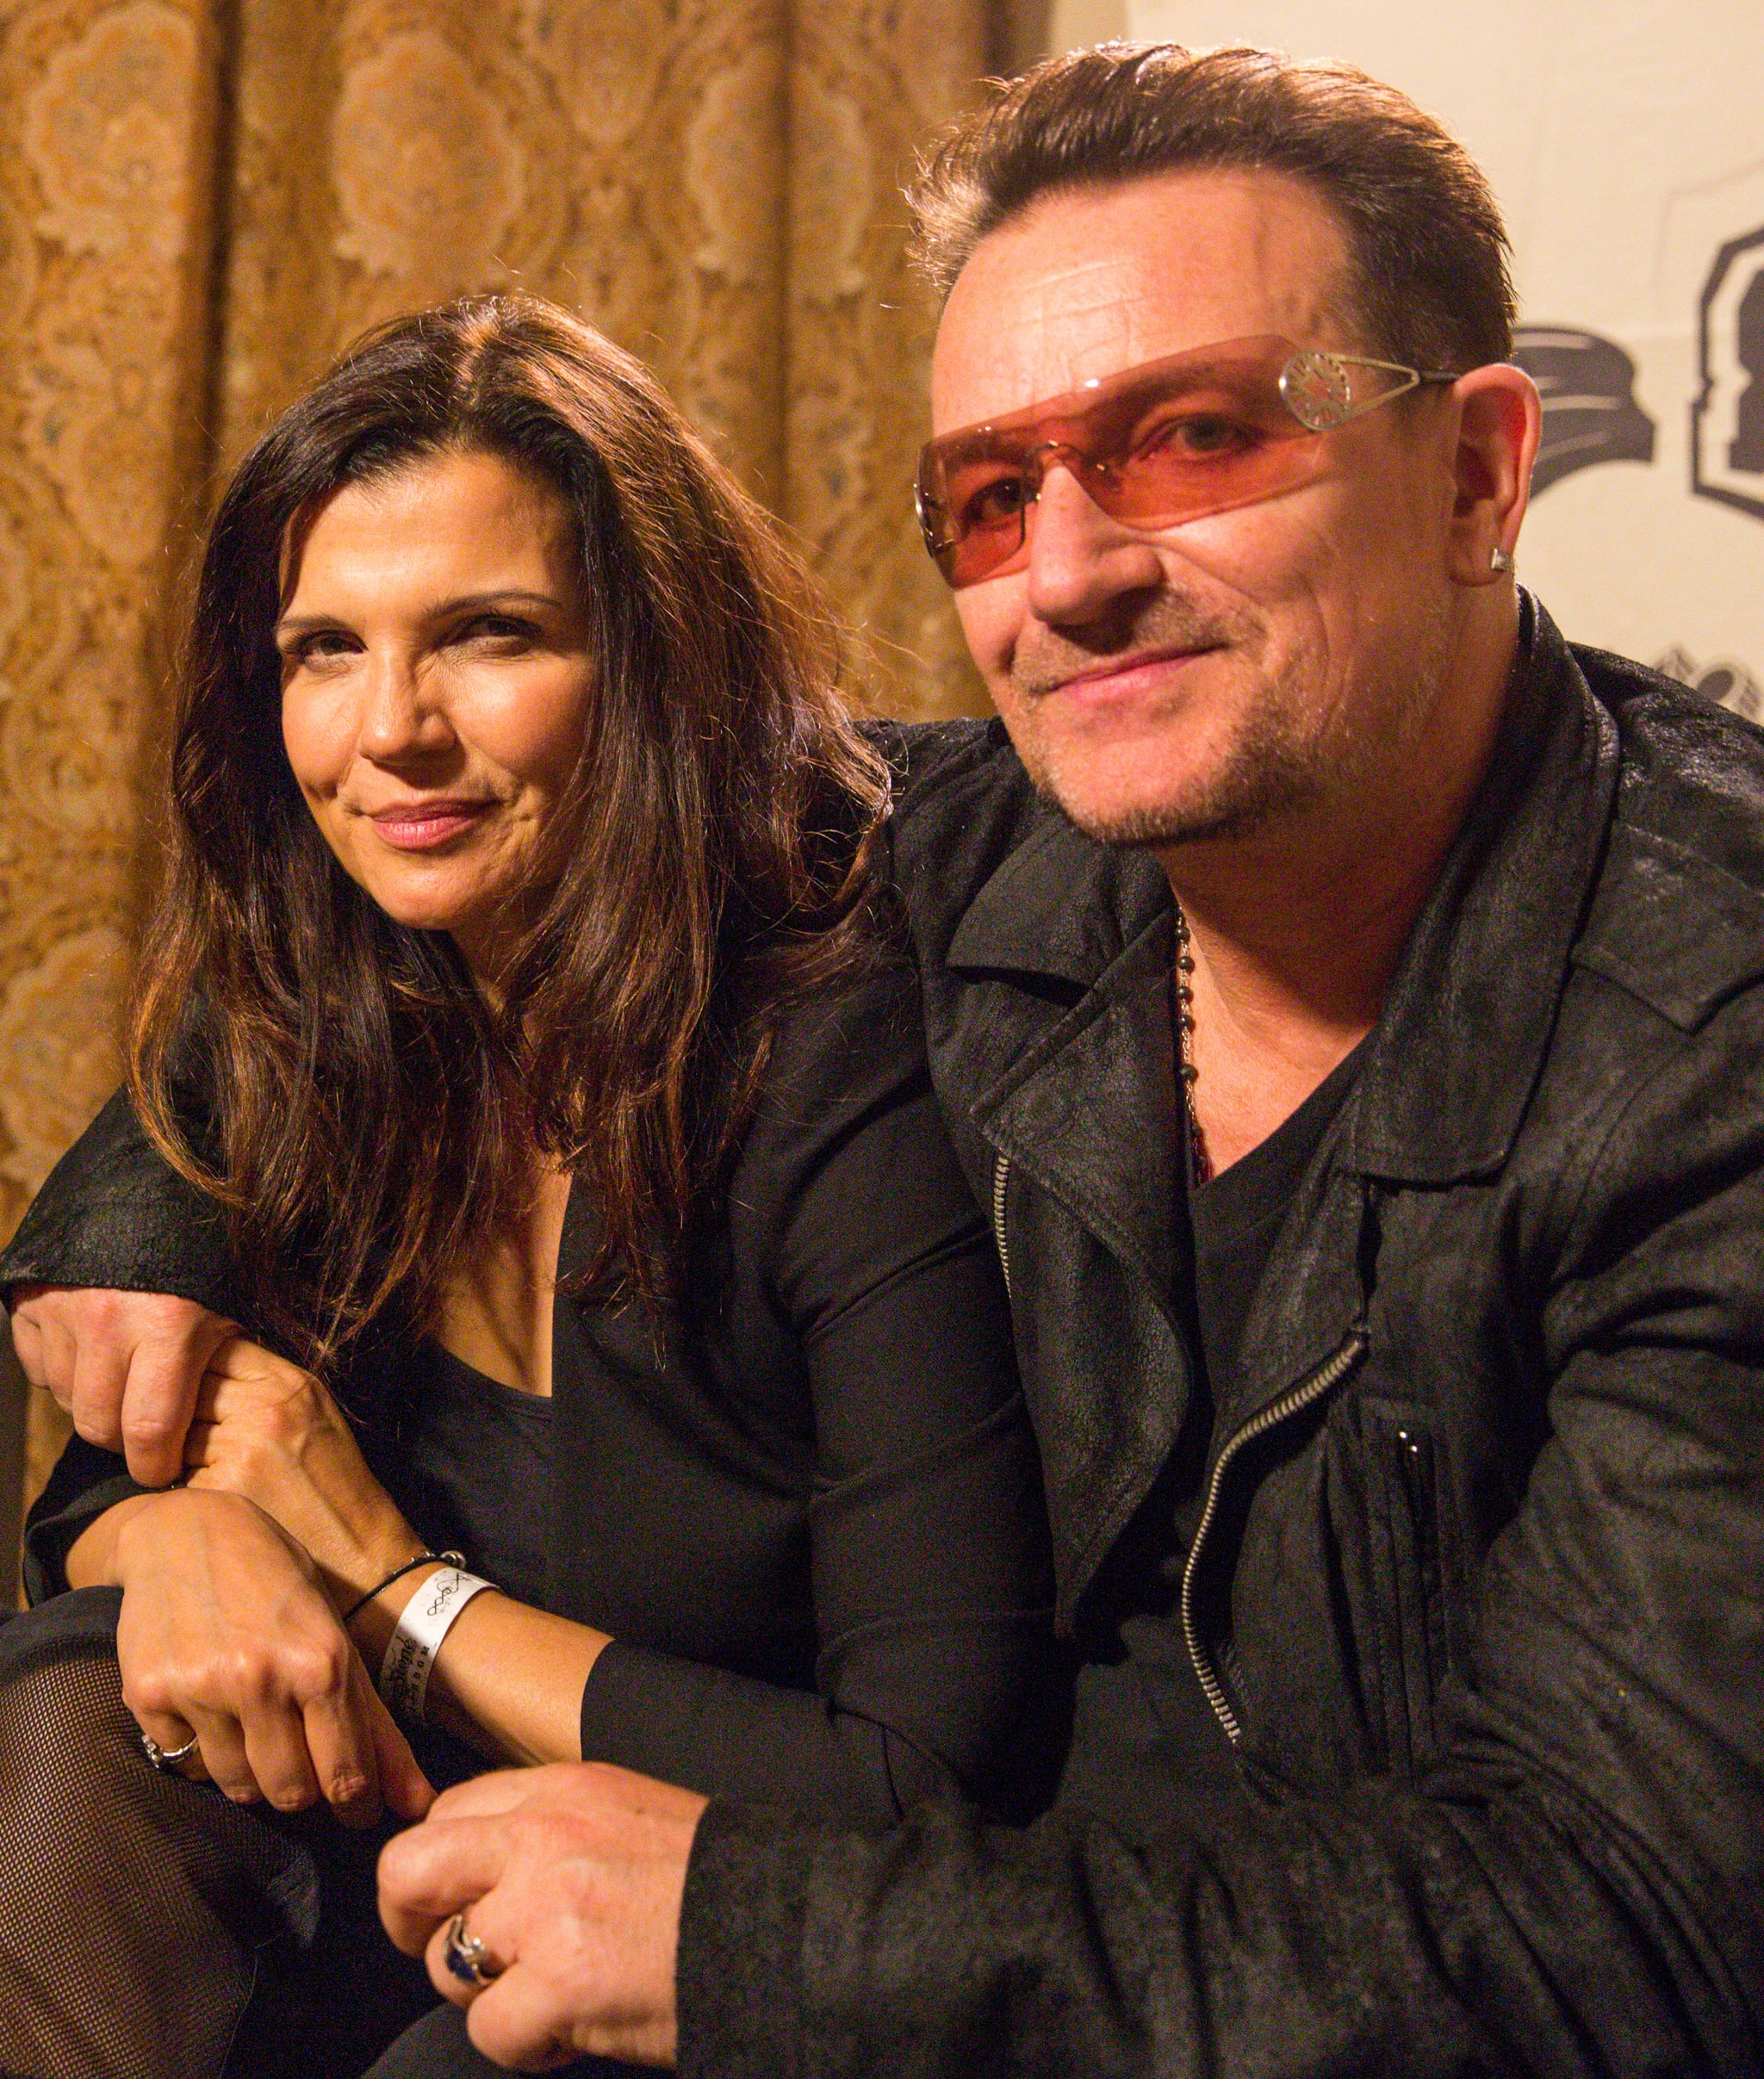 Ali Hewson and her husband, Bono, hosted an event for their line Edun in 2013.